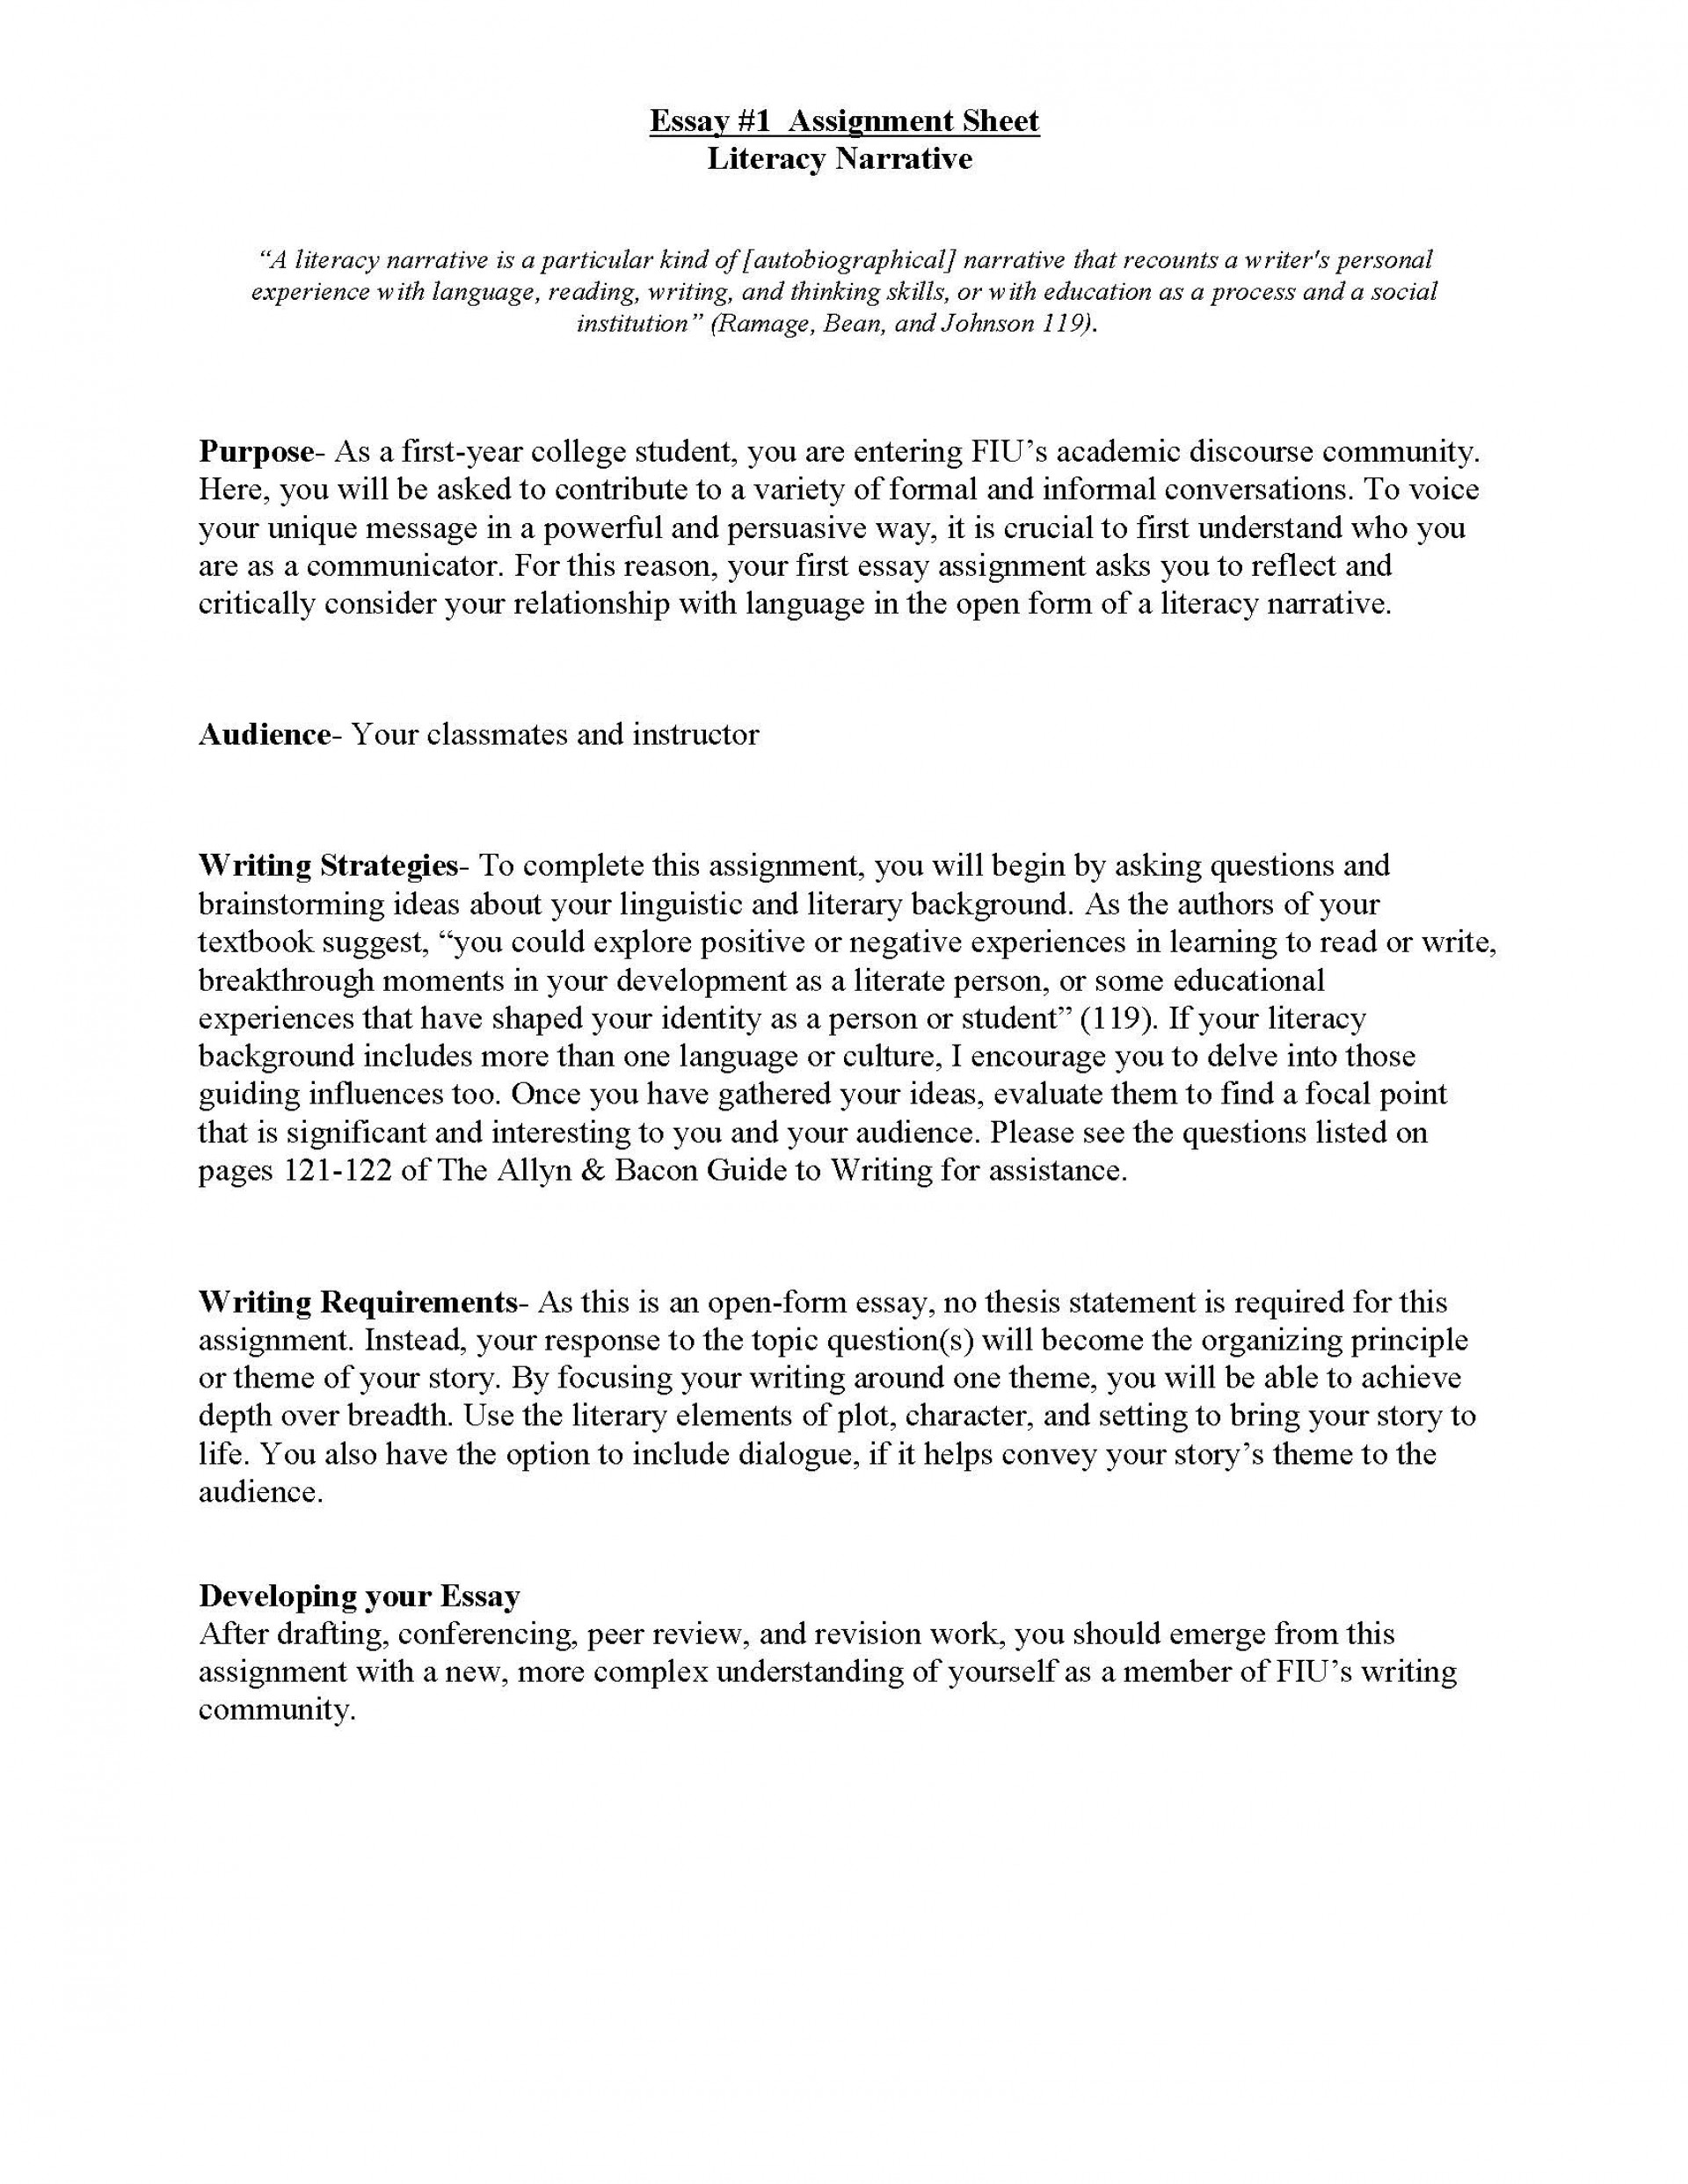 020 Literacy Narrative Unit Assignment Spring 2012 Page 1 Essay Example Fearsome Essays About Family Topics For O Levels Personal Traveling 1920